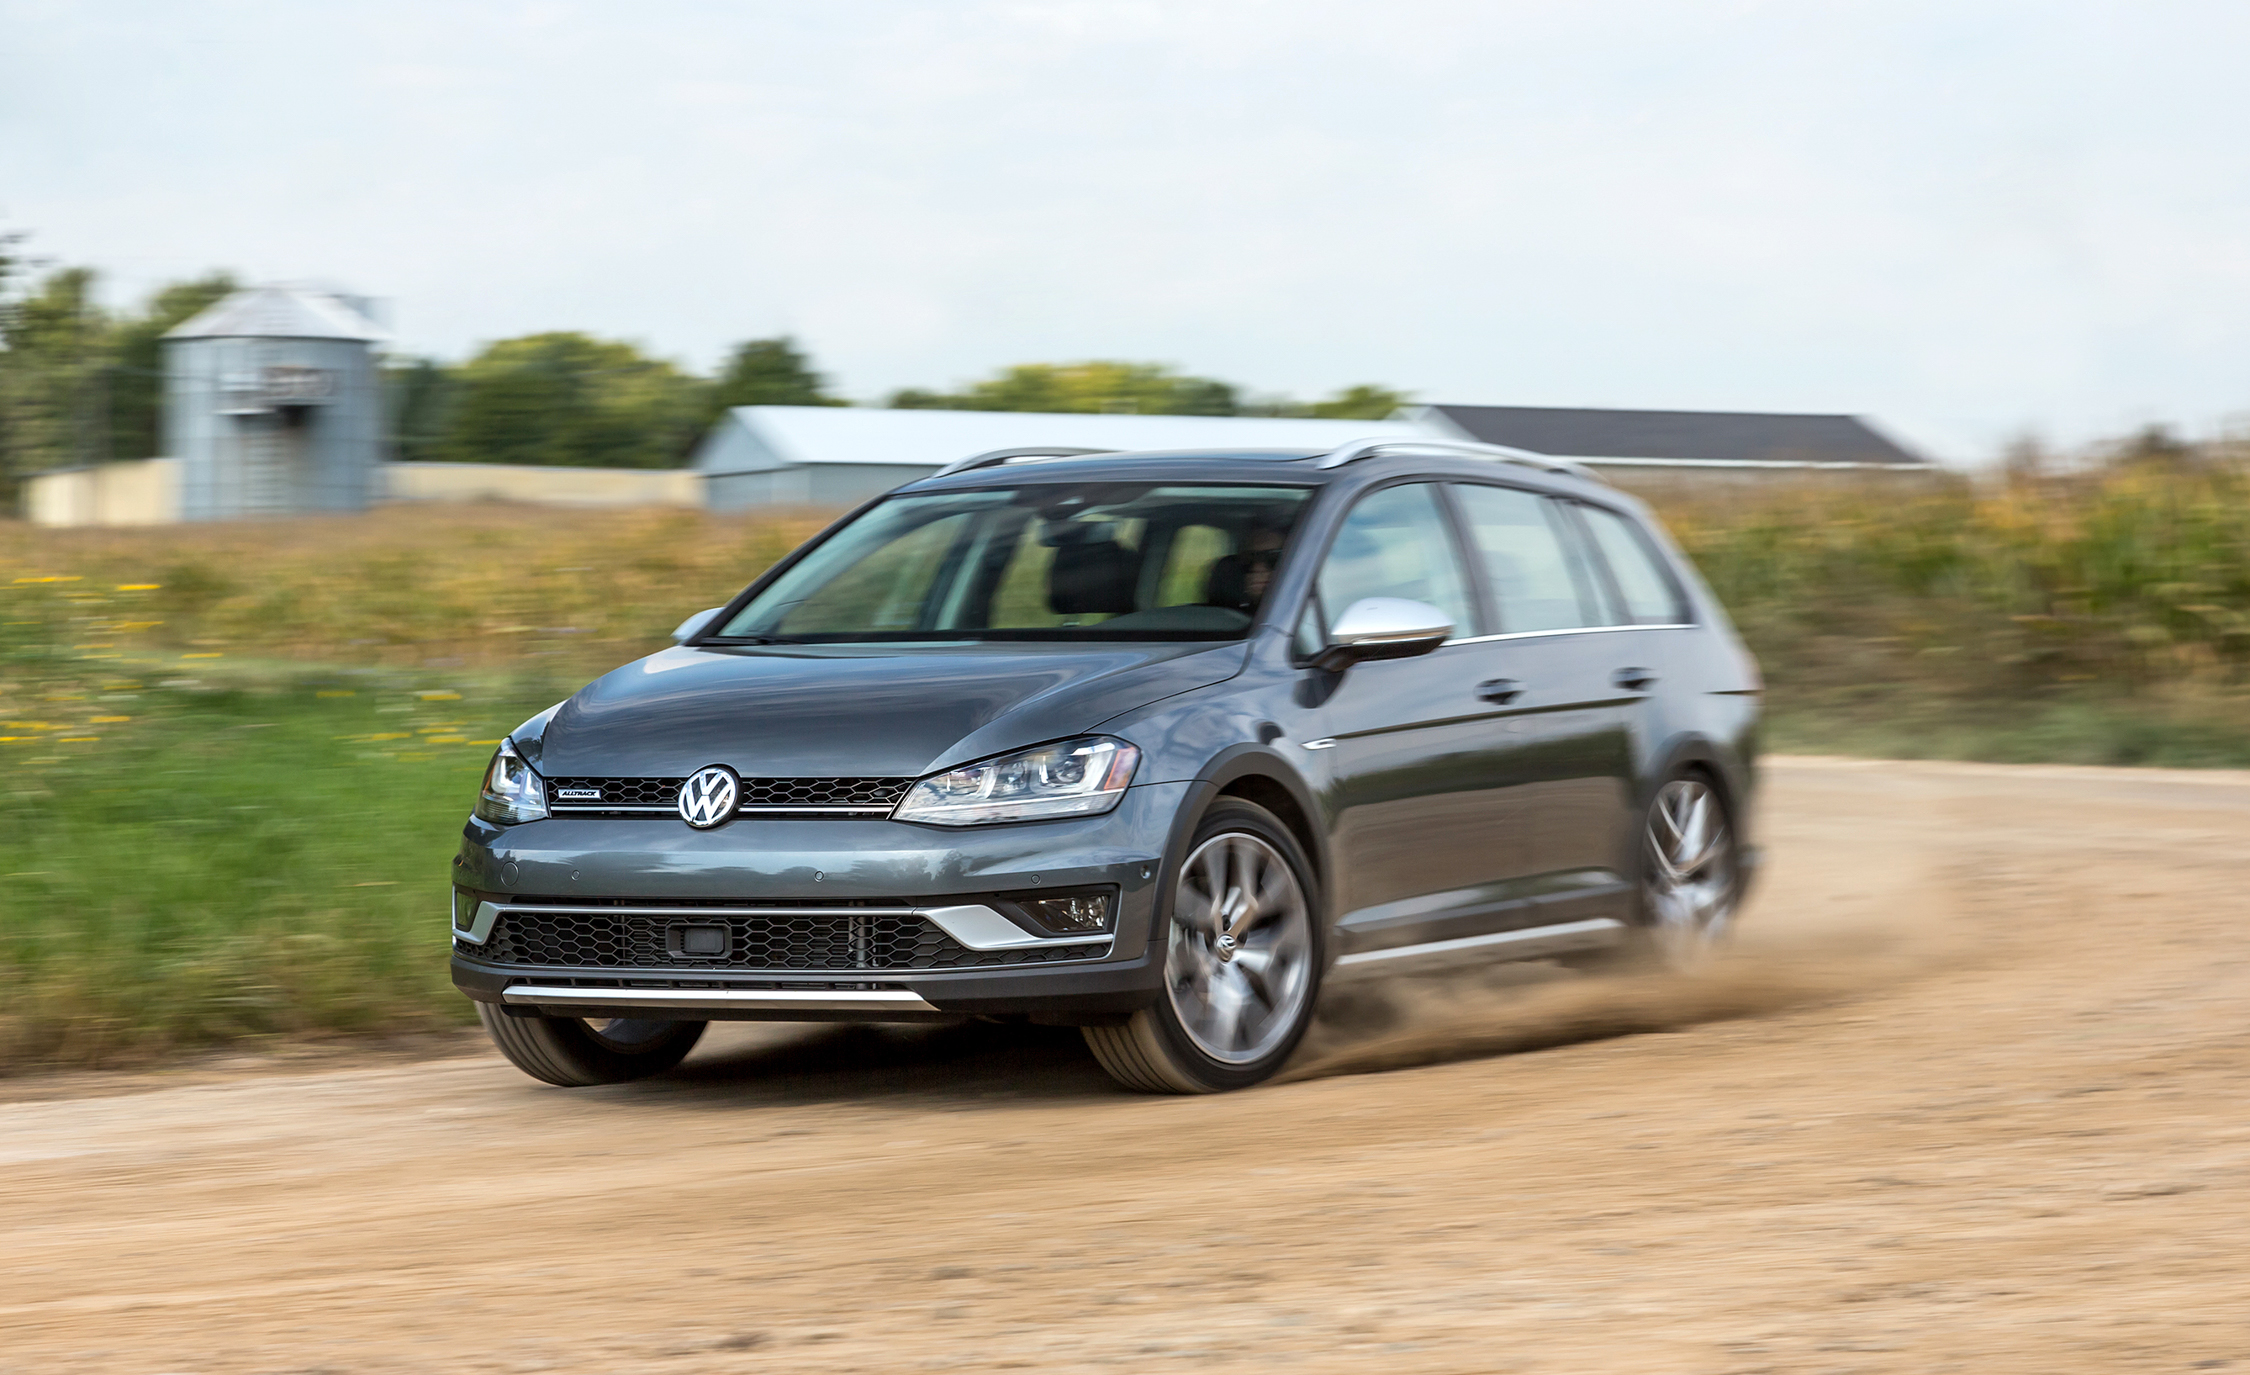 2017 Volkswagen Golf Alltrack (View 5 of 5)